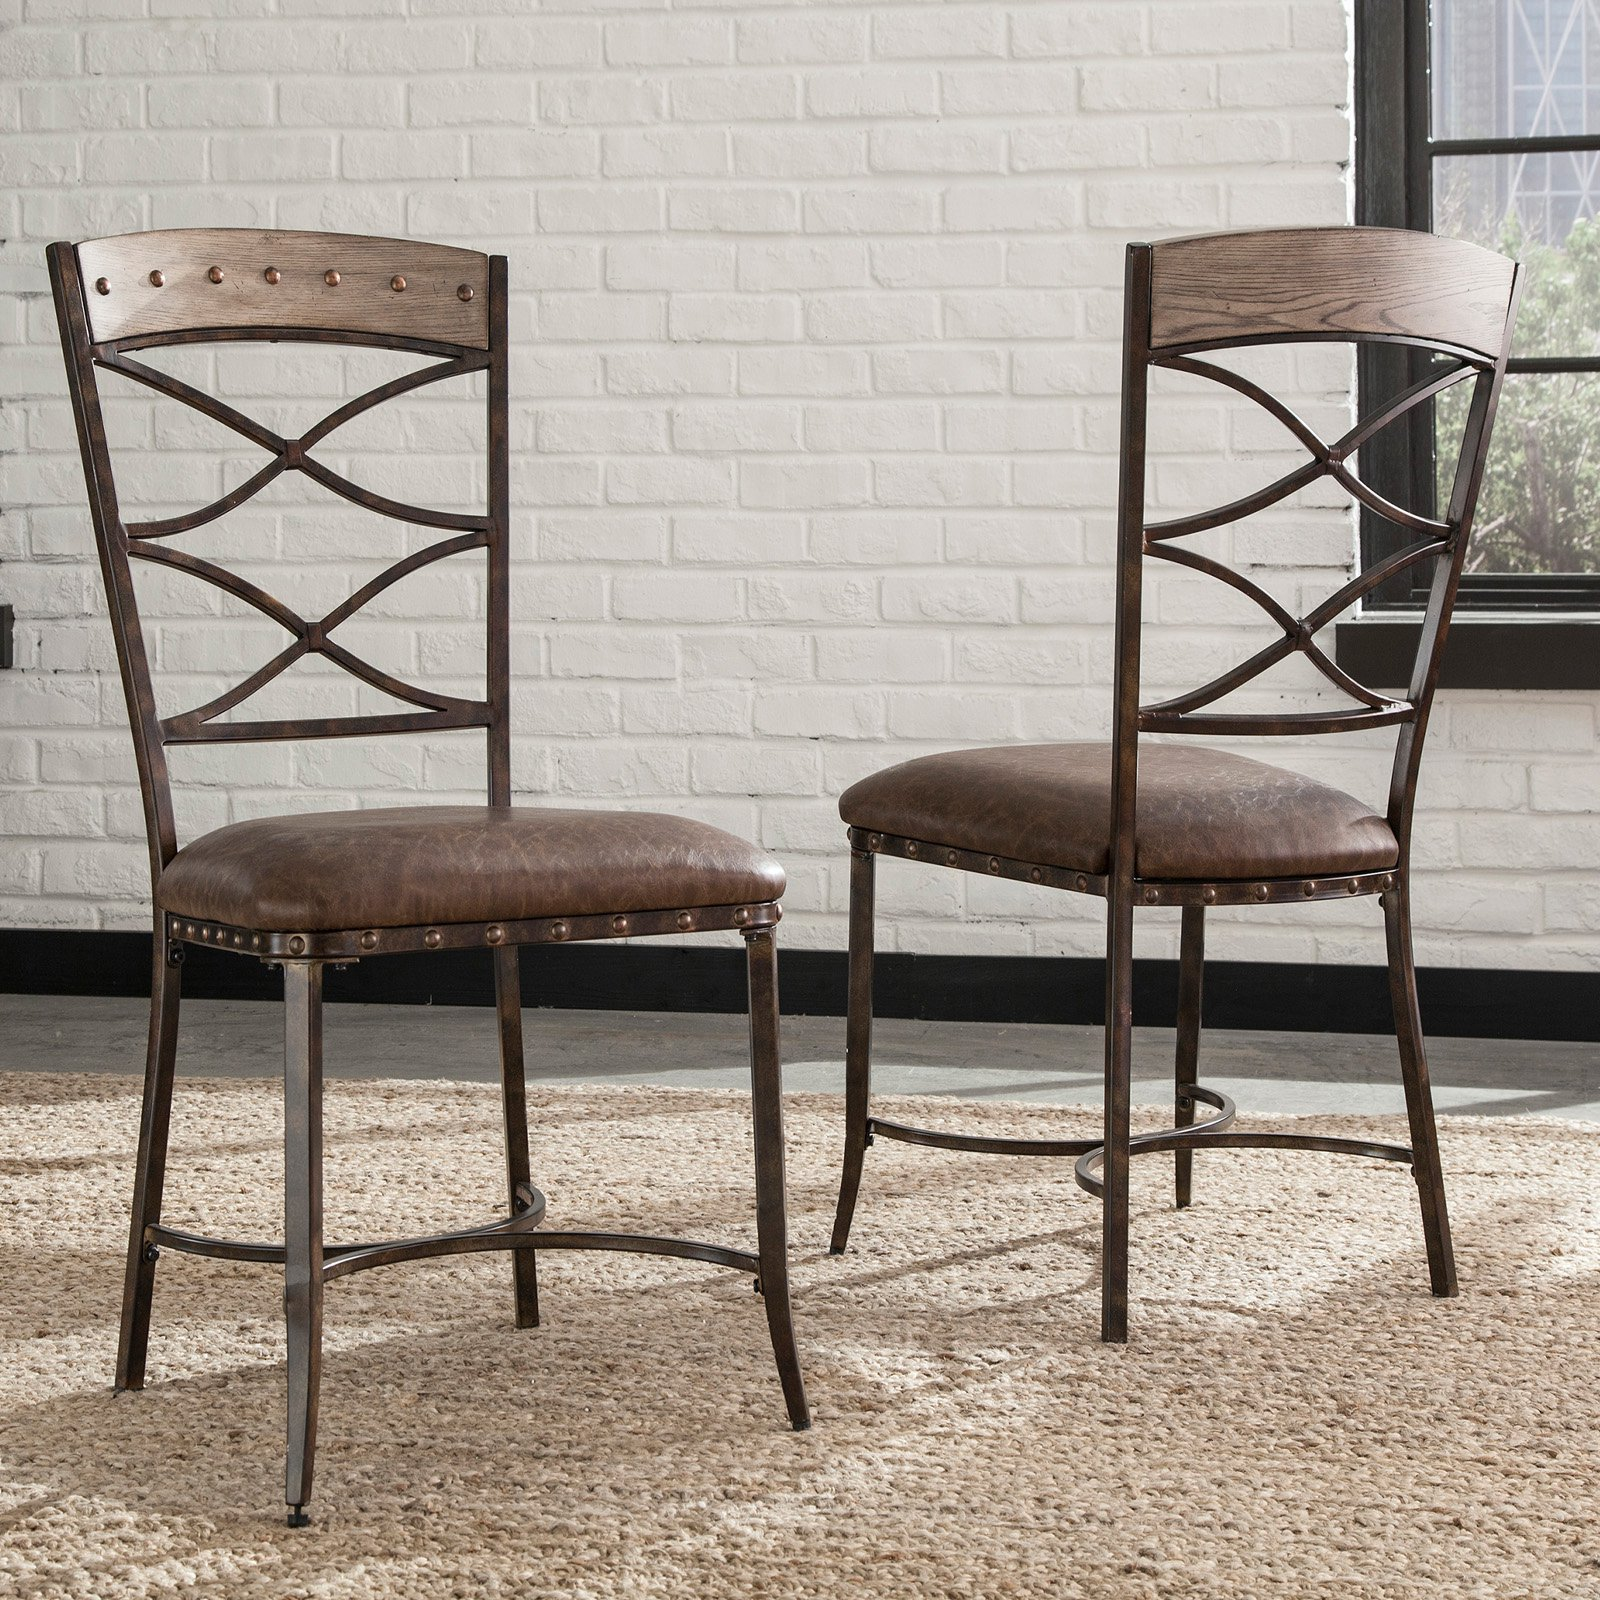 Hillsdsale Emmons Dining Chair, Set of 2